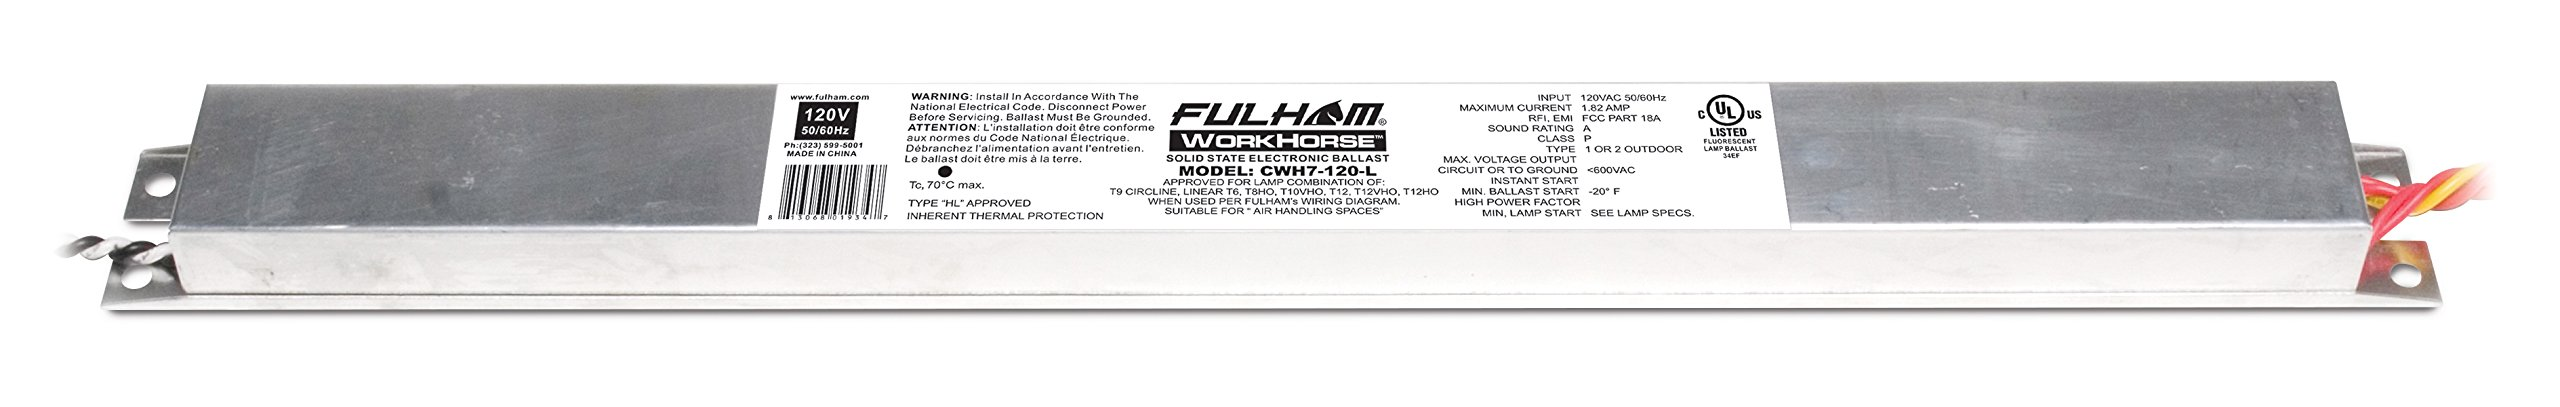 Fulham Lighting CWH7-120-L Canada Series-Workhorse 7-120V-Linear Model with Side Leads